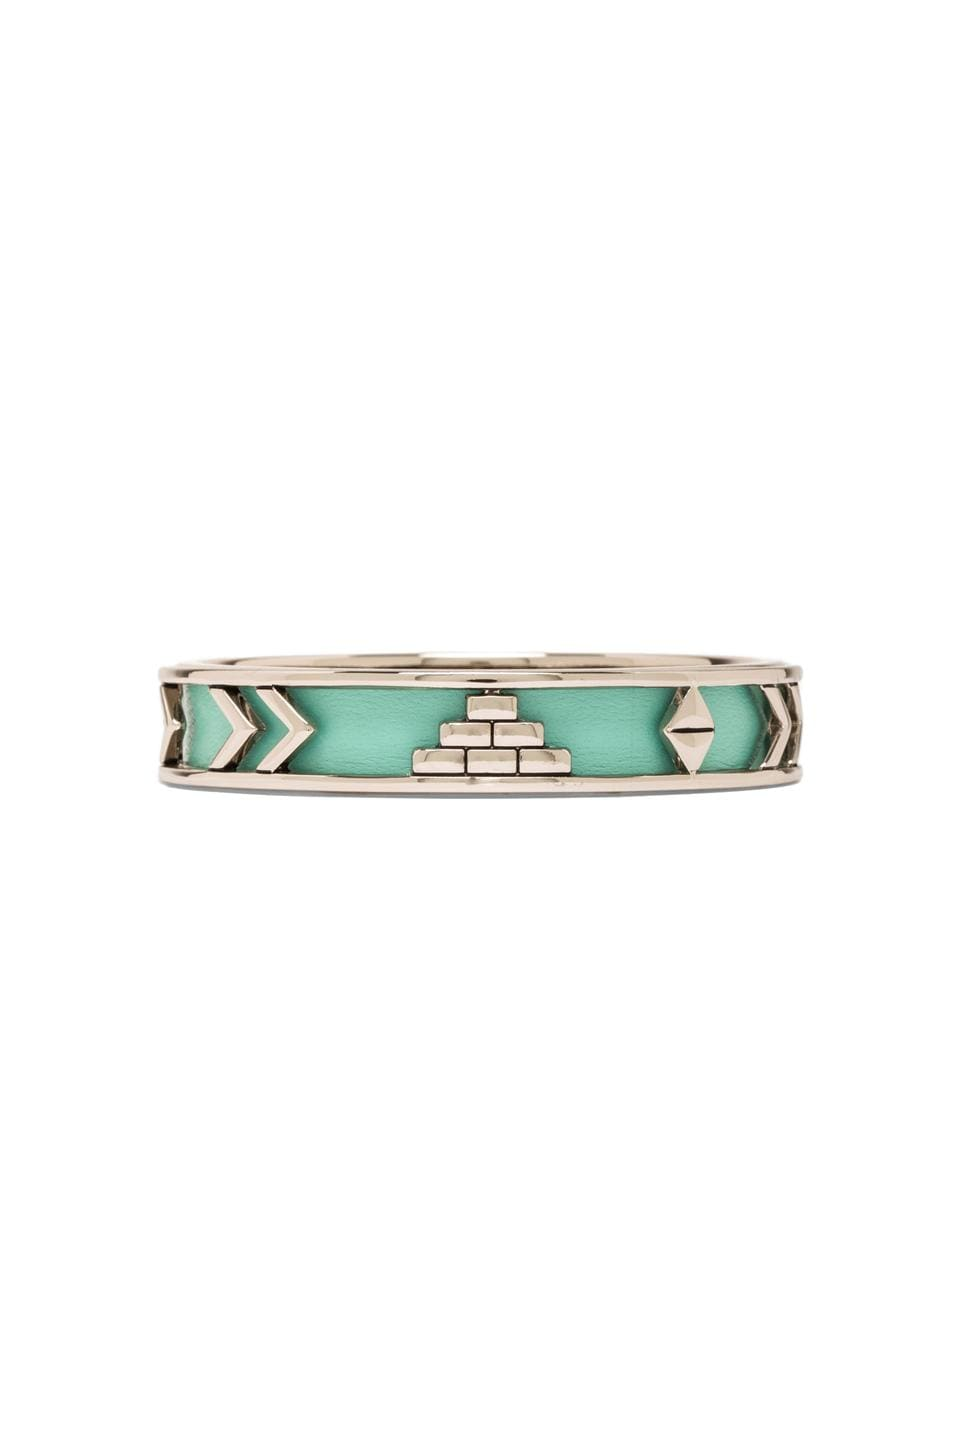 House of Harlow 1960 House of Harlow Aztec Bangle in Robin's Egg